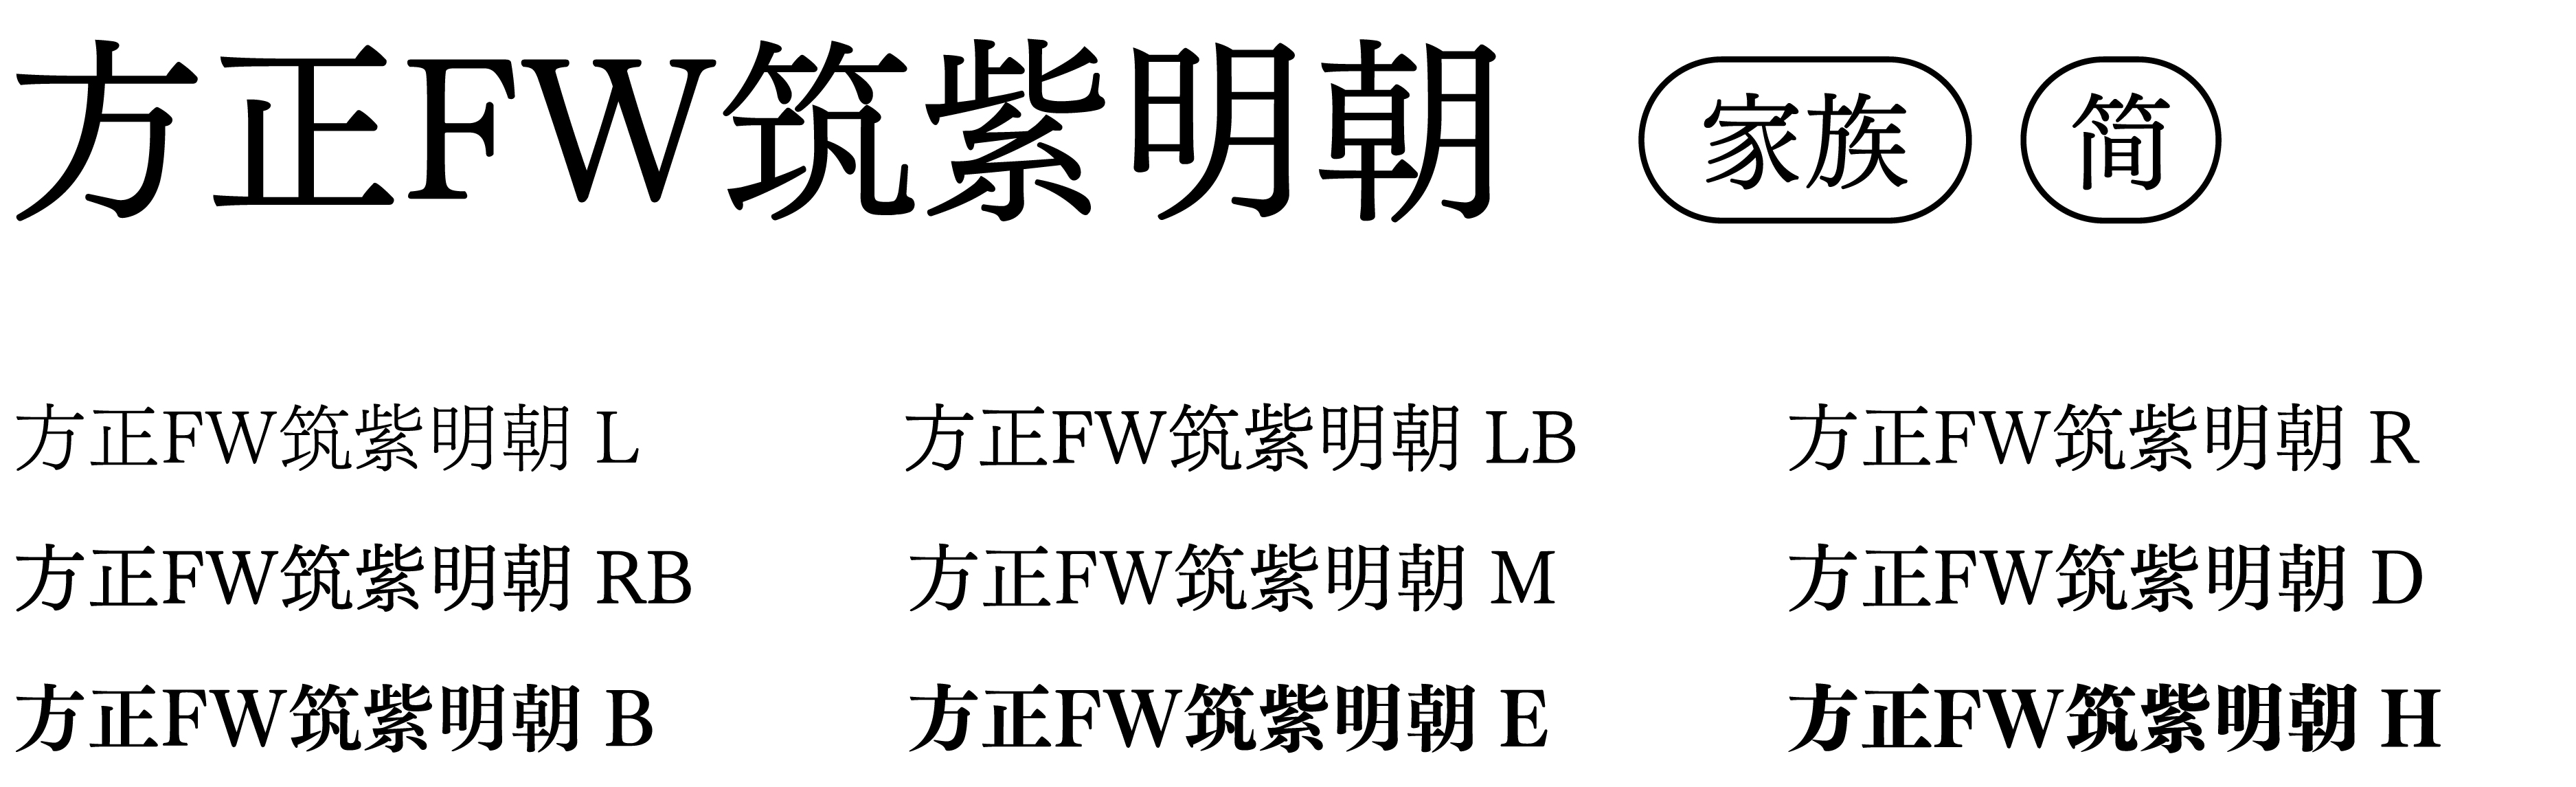 According to the Chinese character specification, the development of Japanese character library is realized.